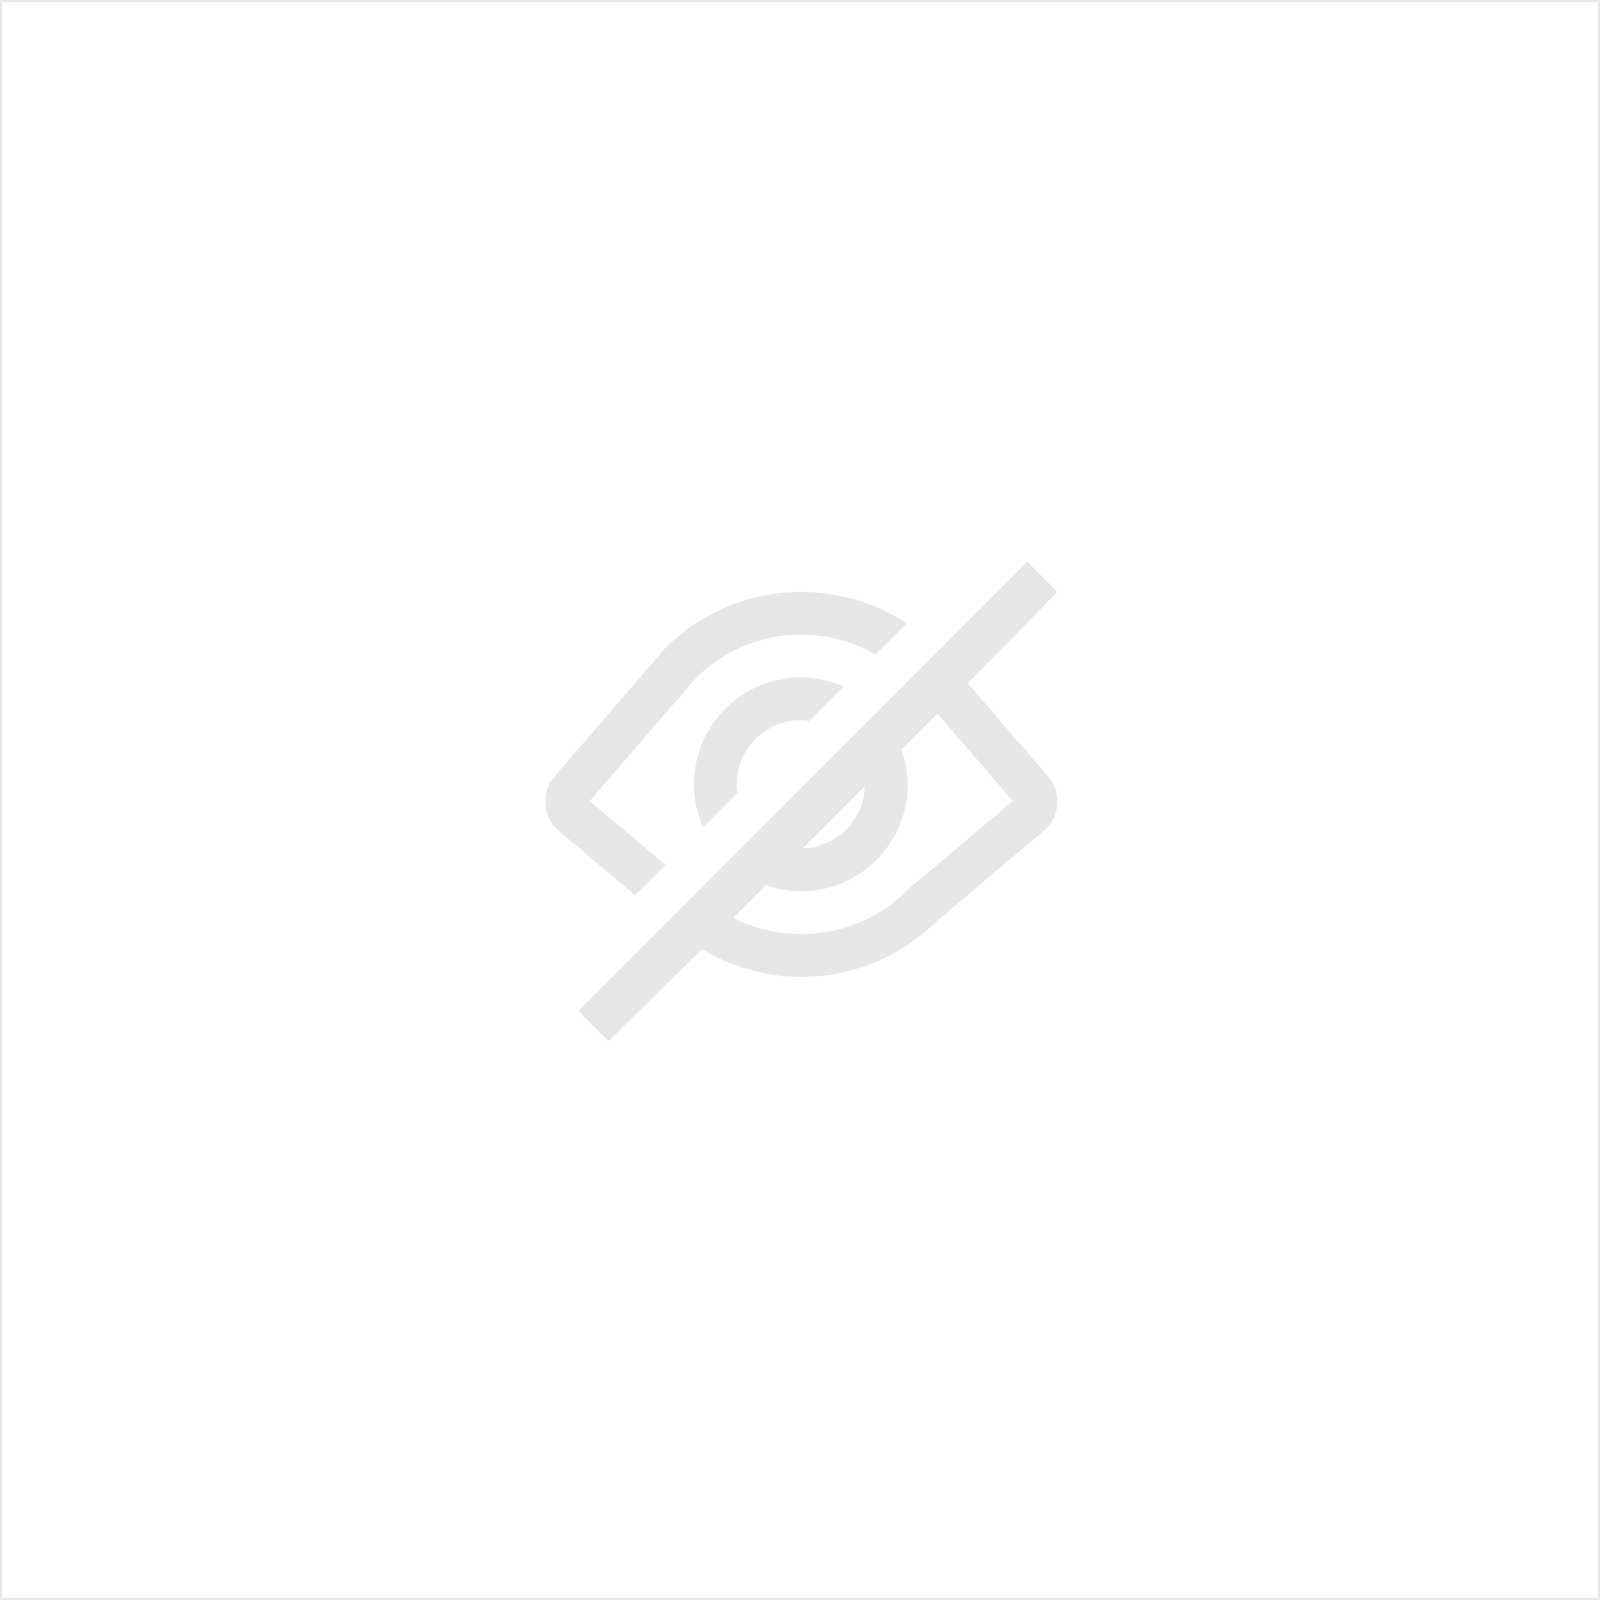 GUNSON COLORTUNE VERBRANDINGS-TEST KIT 14MM (G4074)